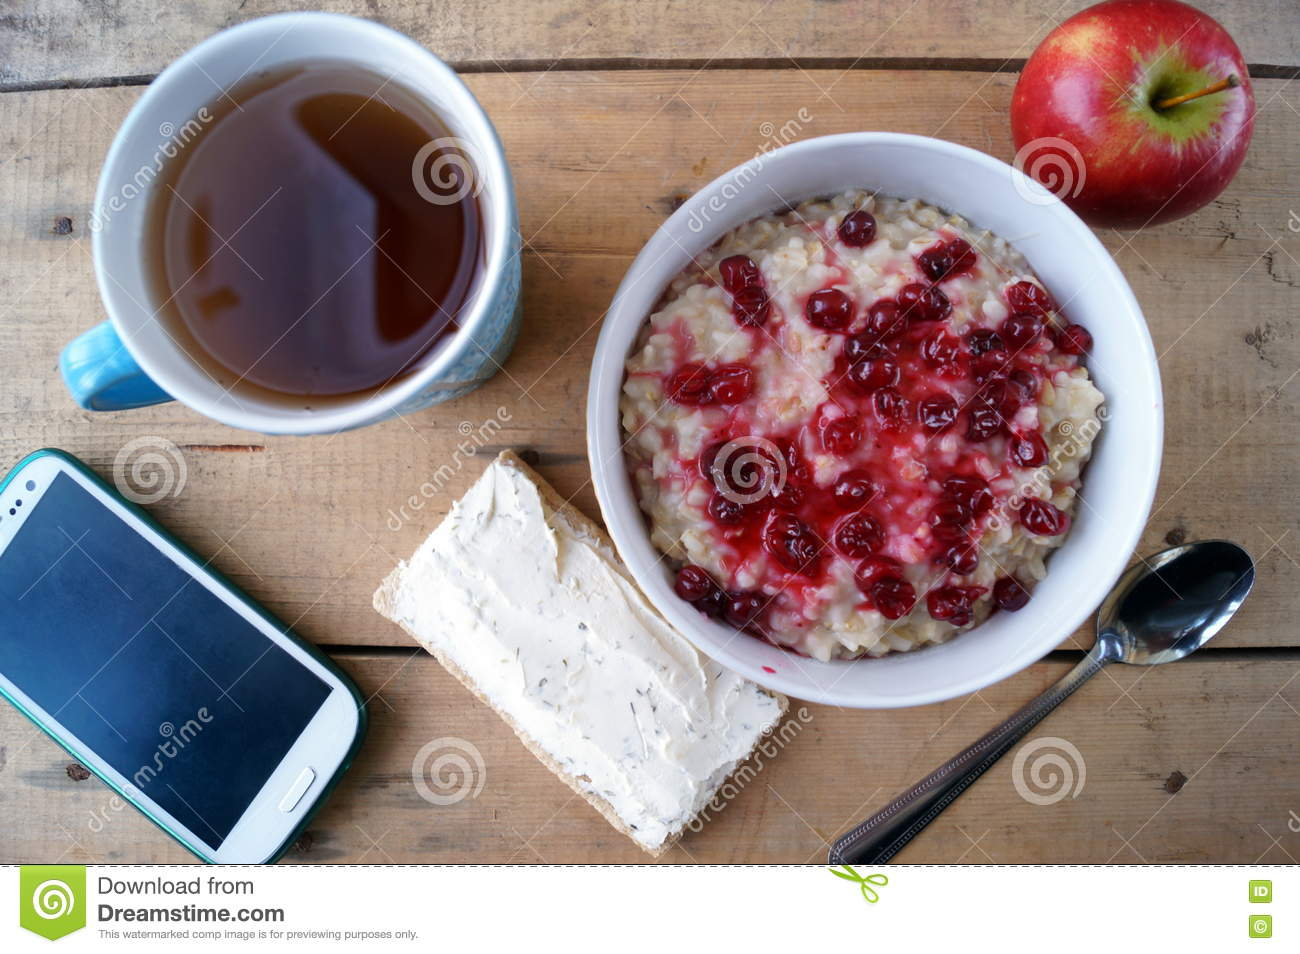 Healthy breakfast, vegetarian. Oatmeal with cranberries, apple, sandwich with cream cheese, tea, mobile phone.